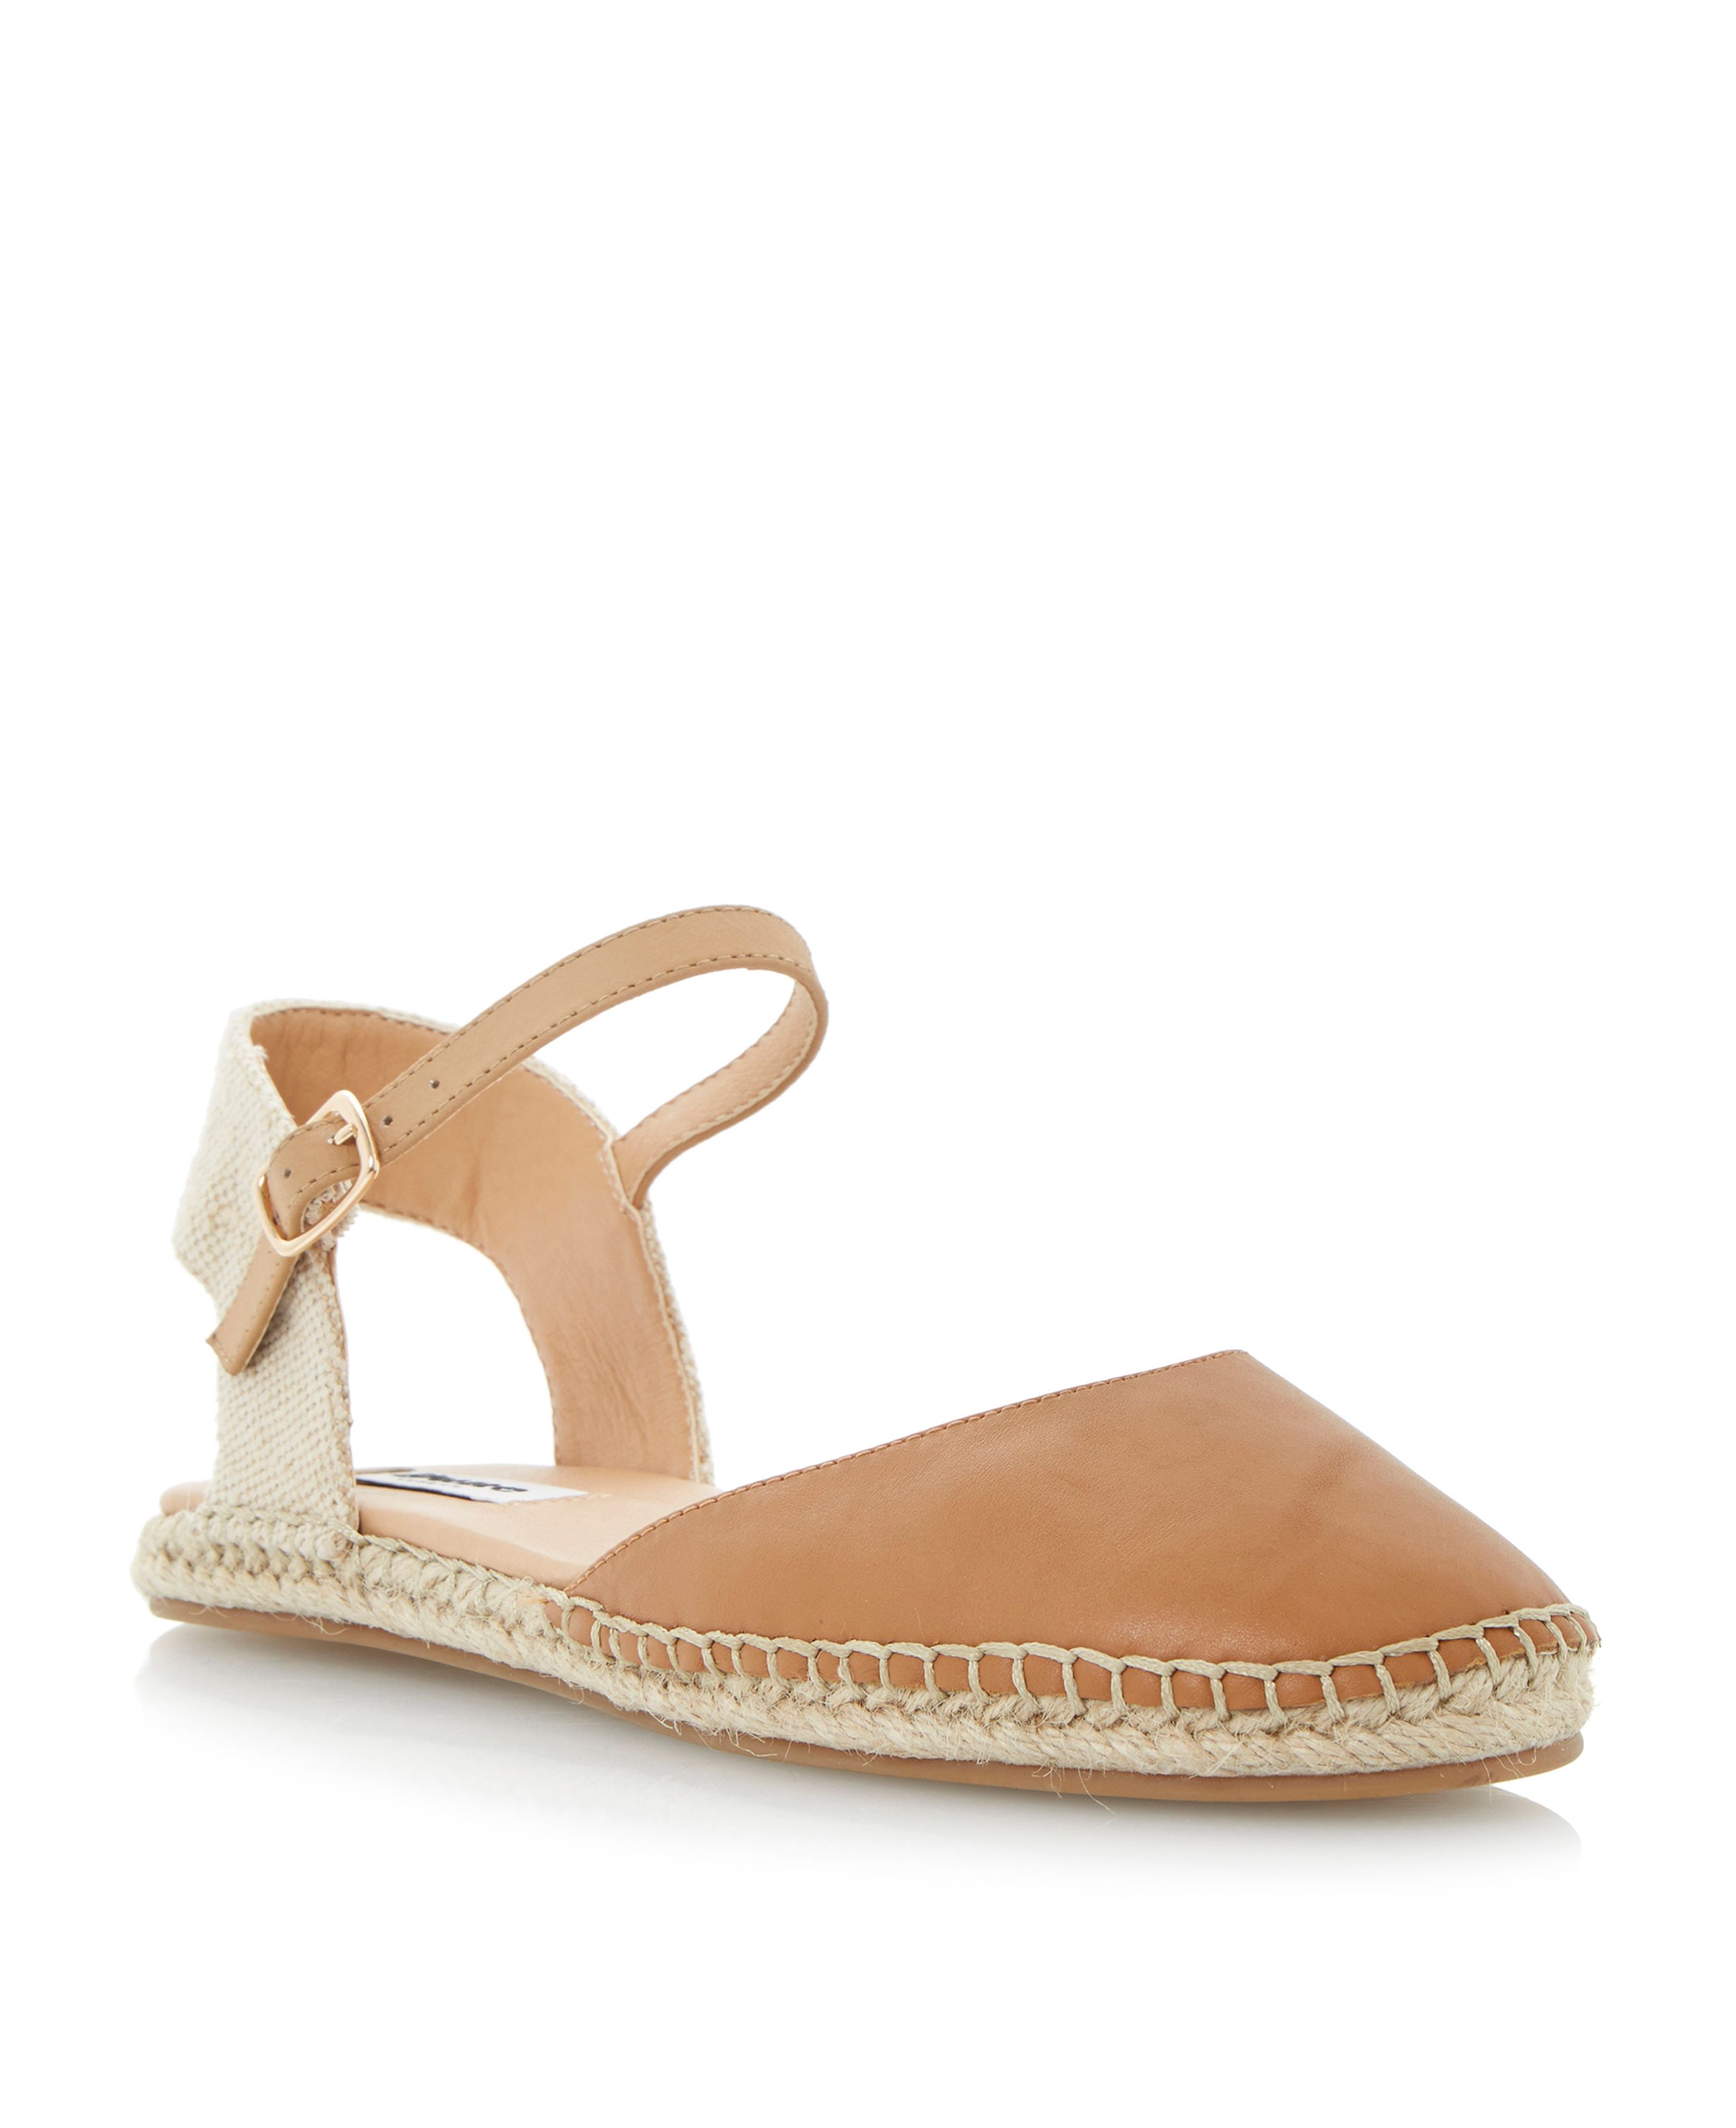 Jessee two part flat espadrille sandals